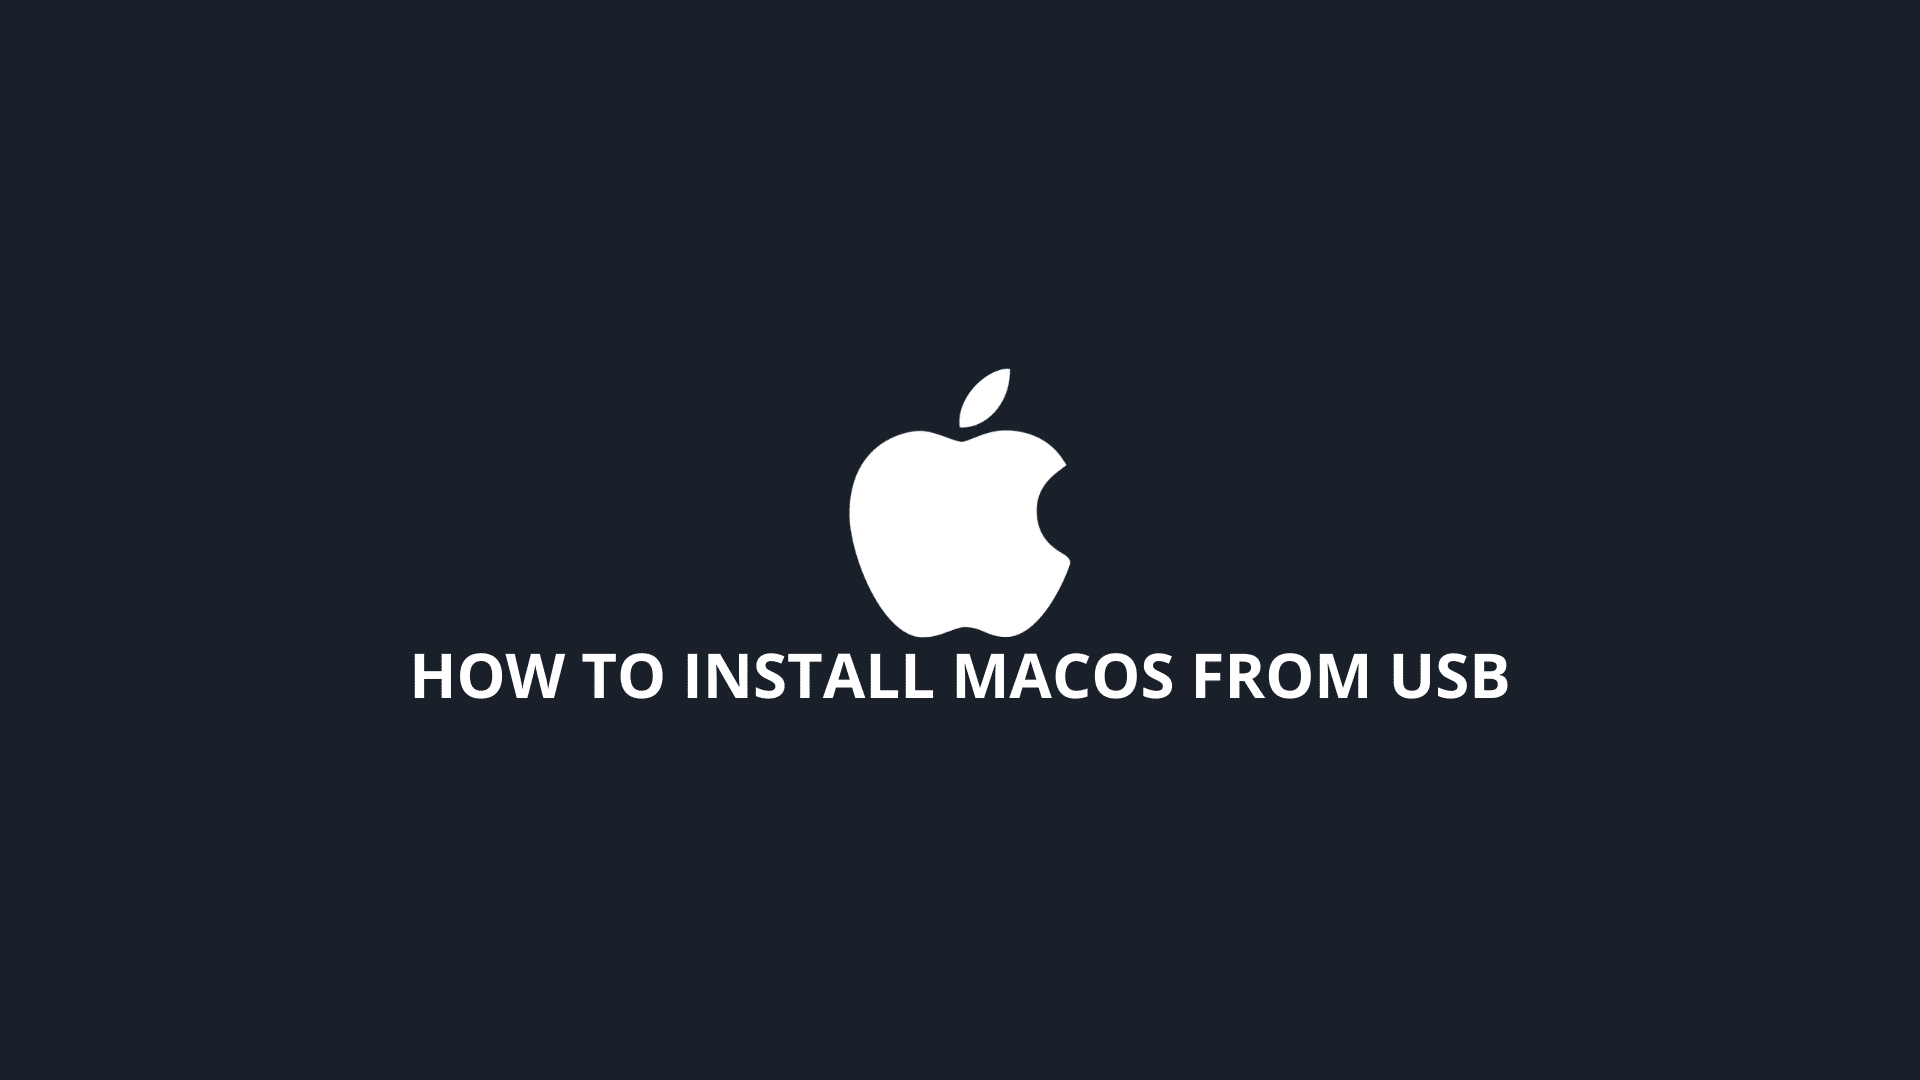 how to install macos from usb